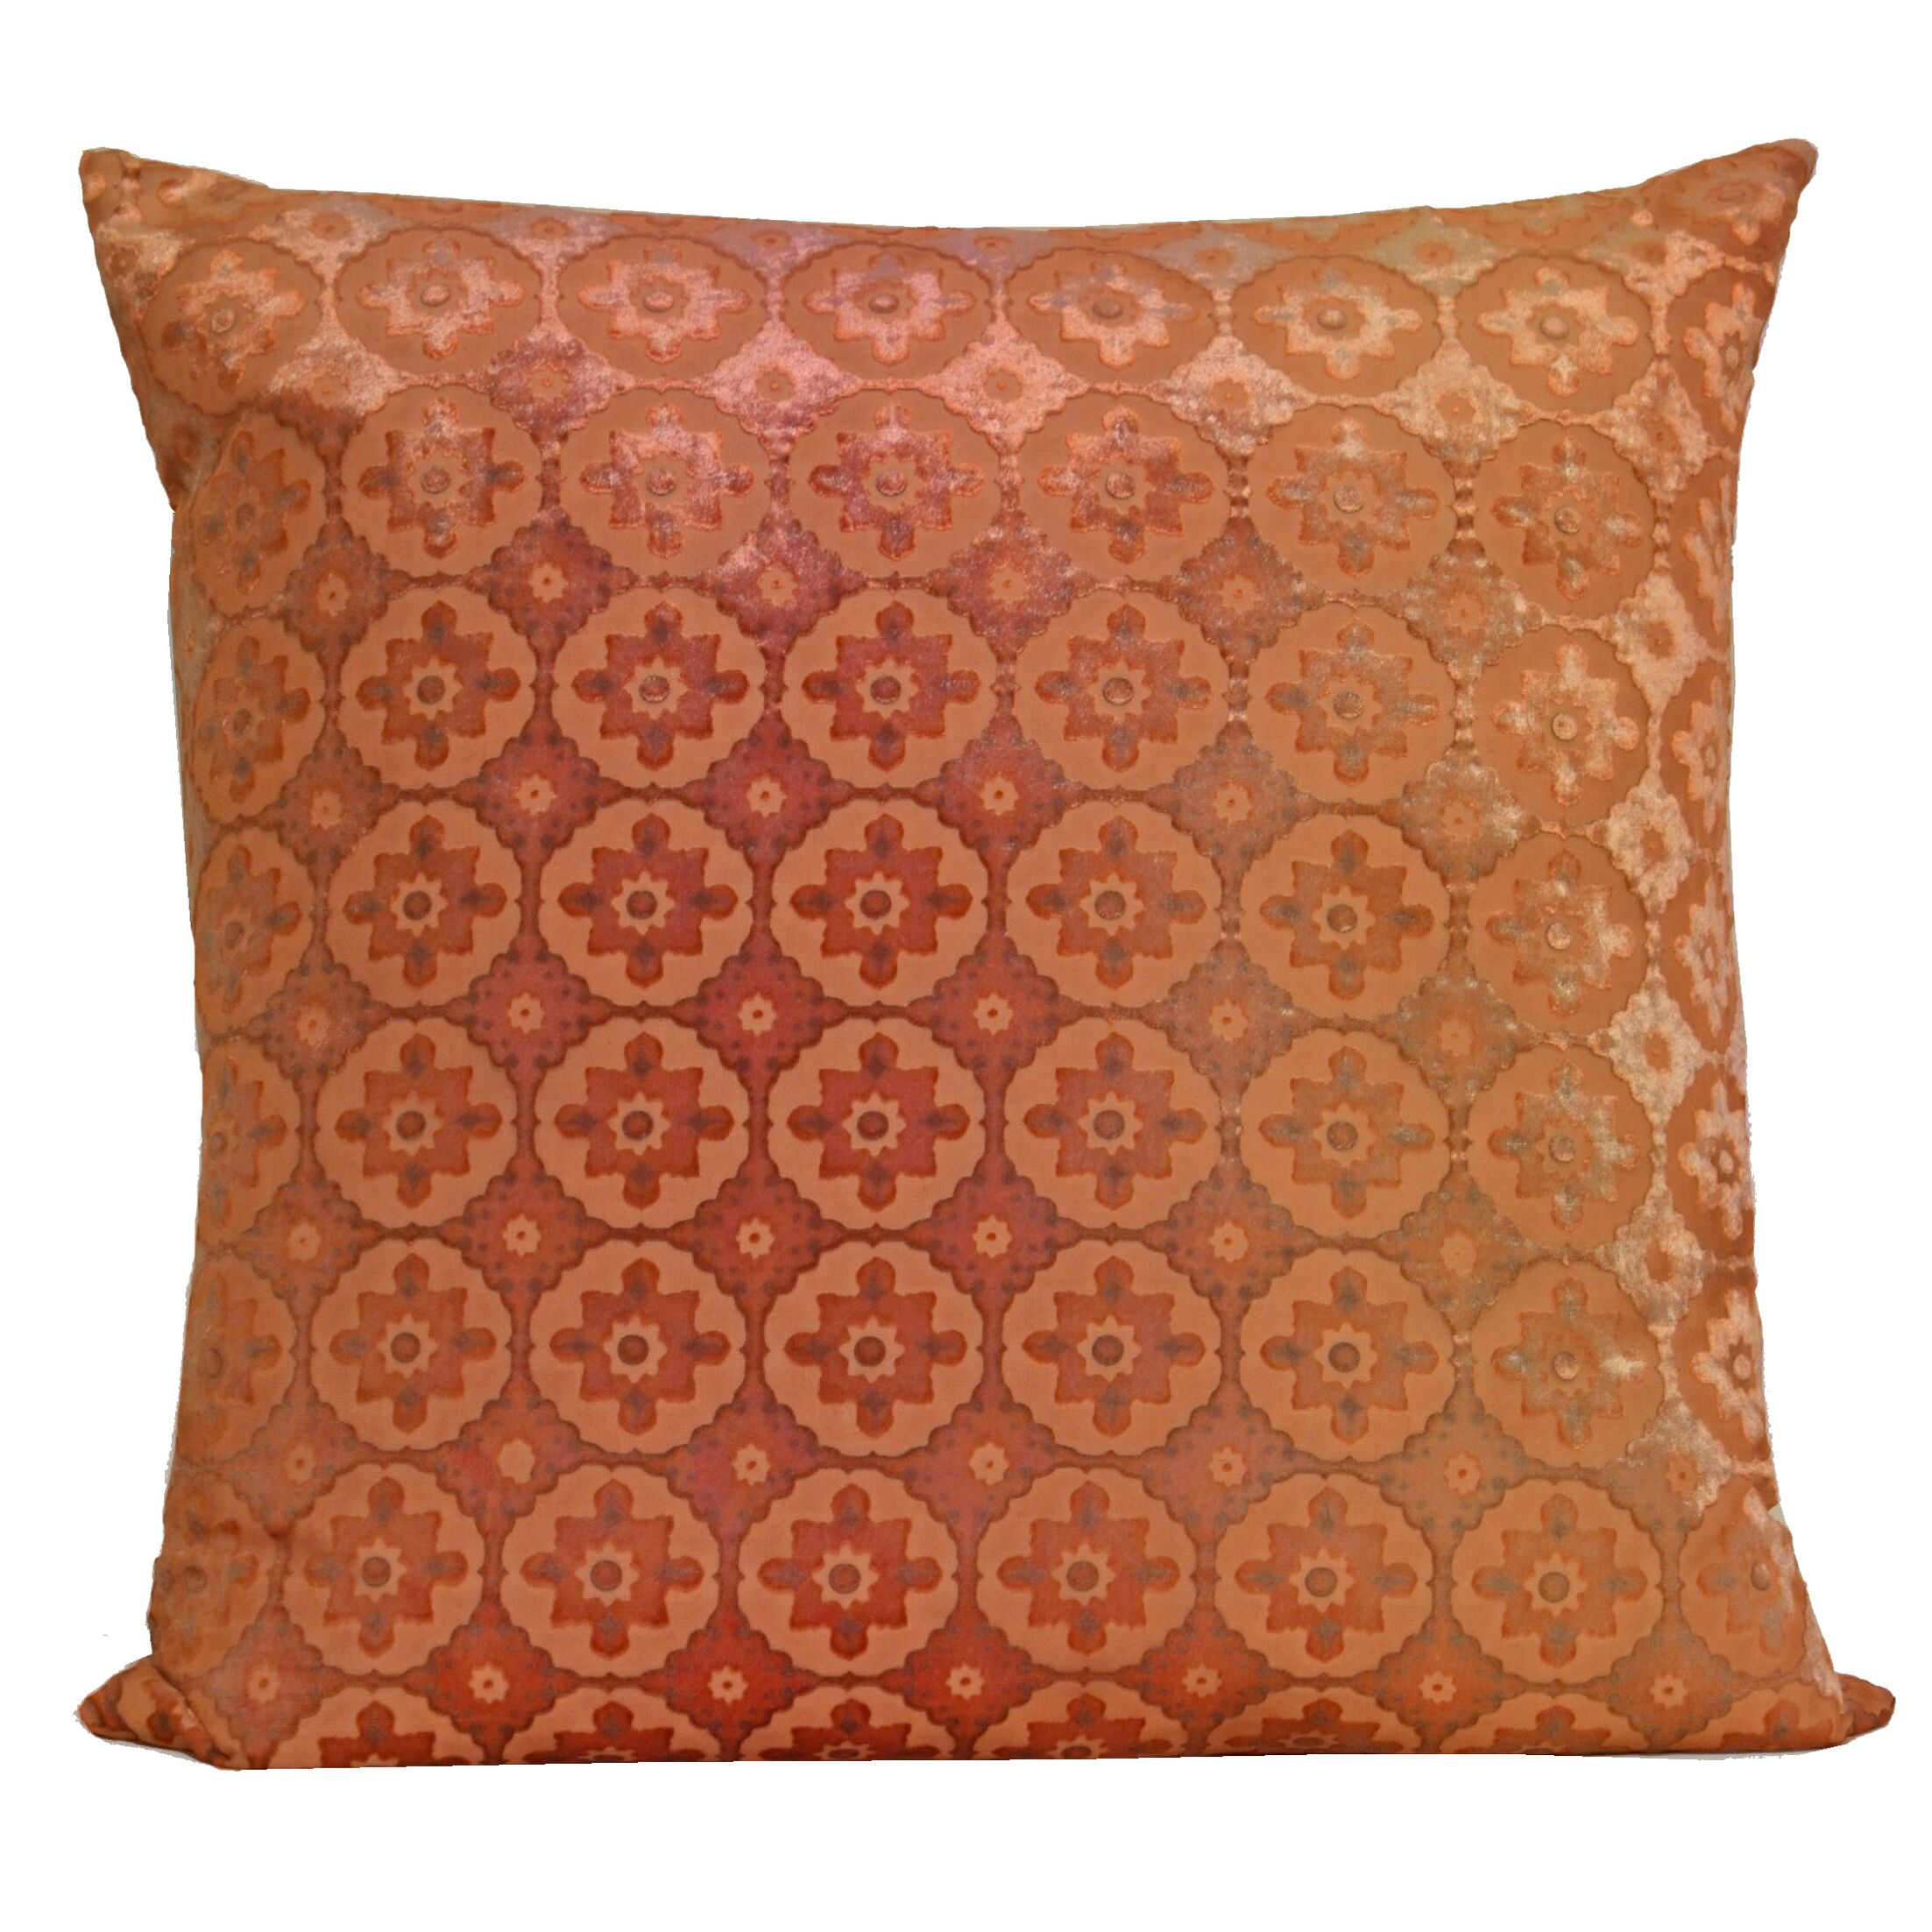 Small Moroccan Velvet Pillow Color: Pink/Gold, Size: 18'' H x 18'' W x 4'' D